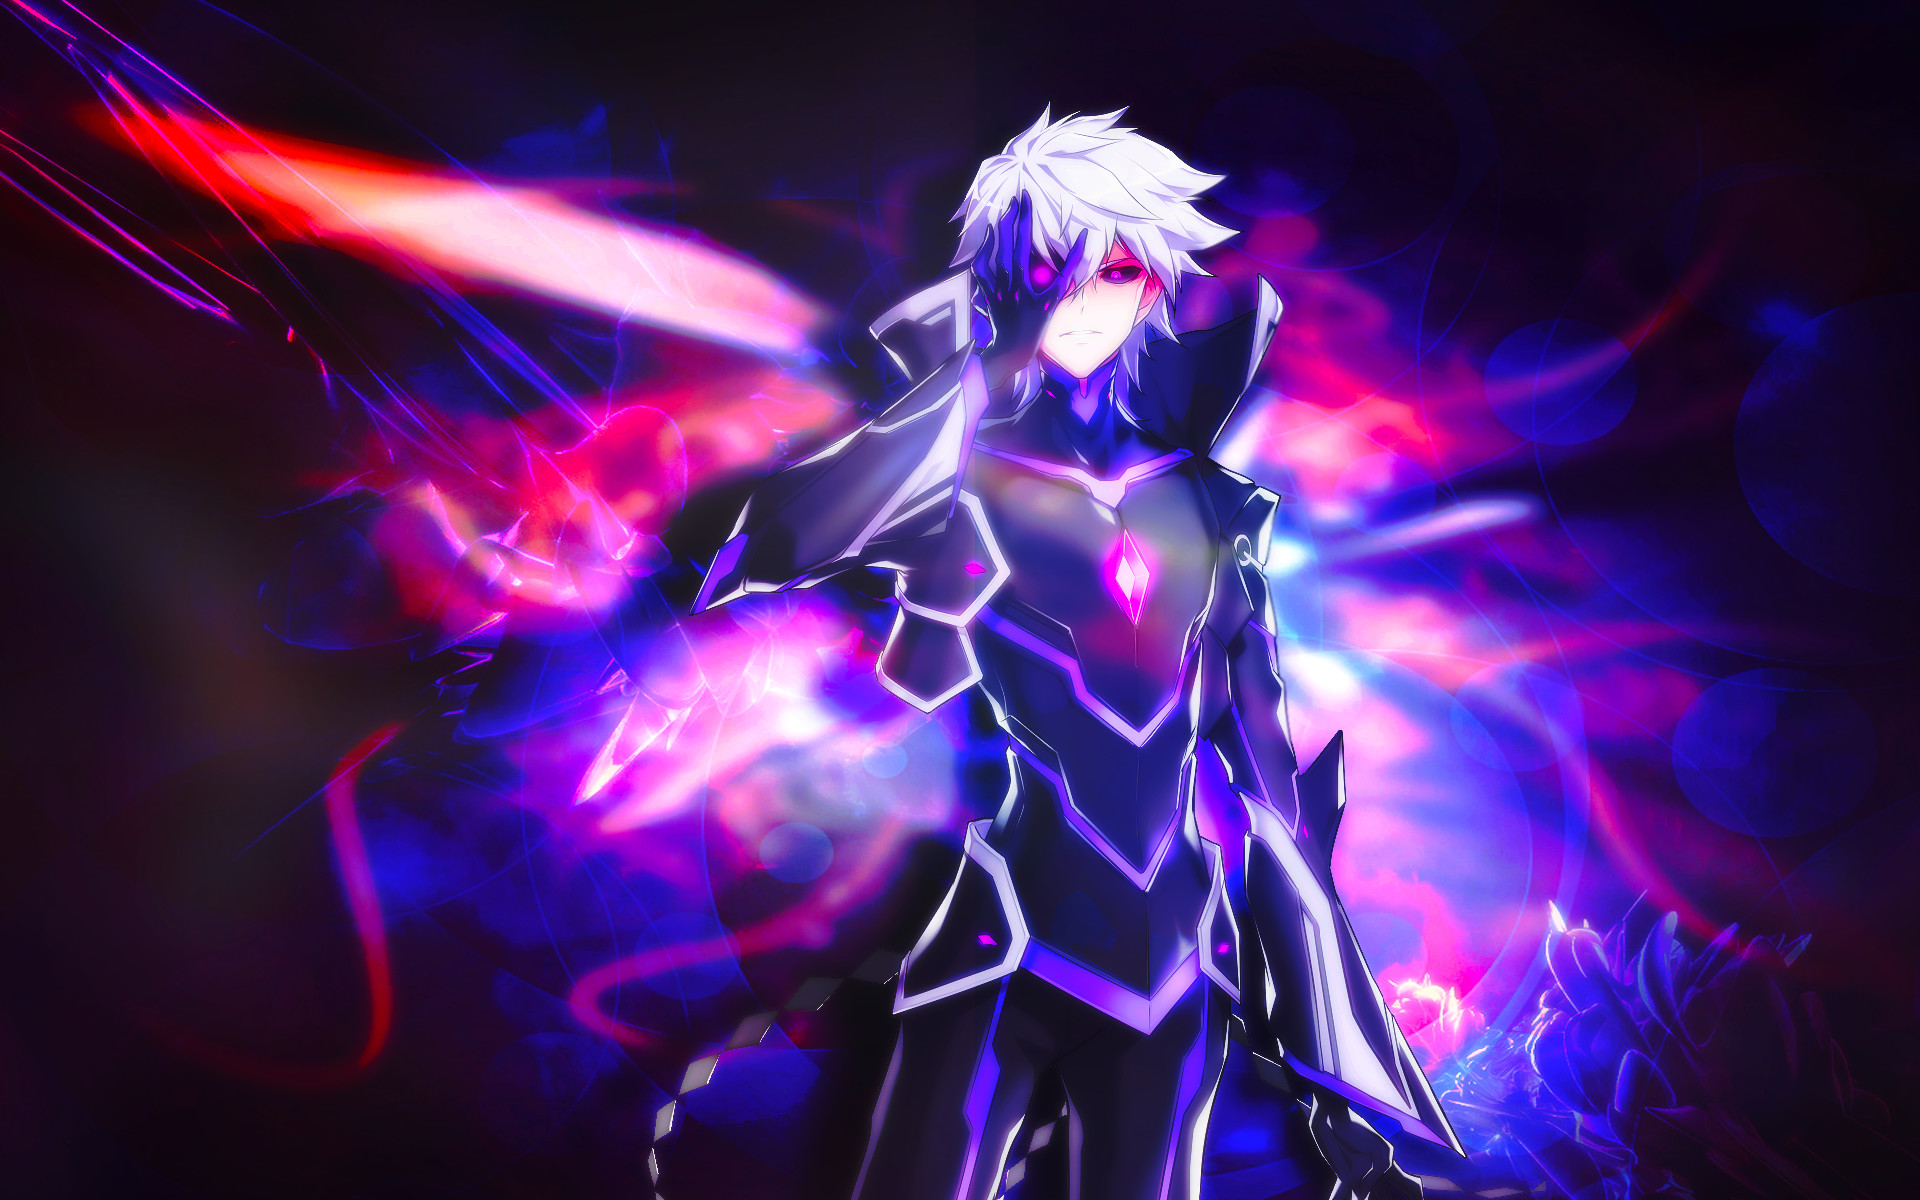 1920x1200 Video Game - Elsword Video Game Anime Wallpaper